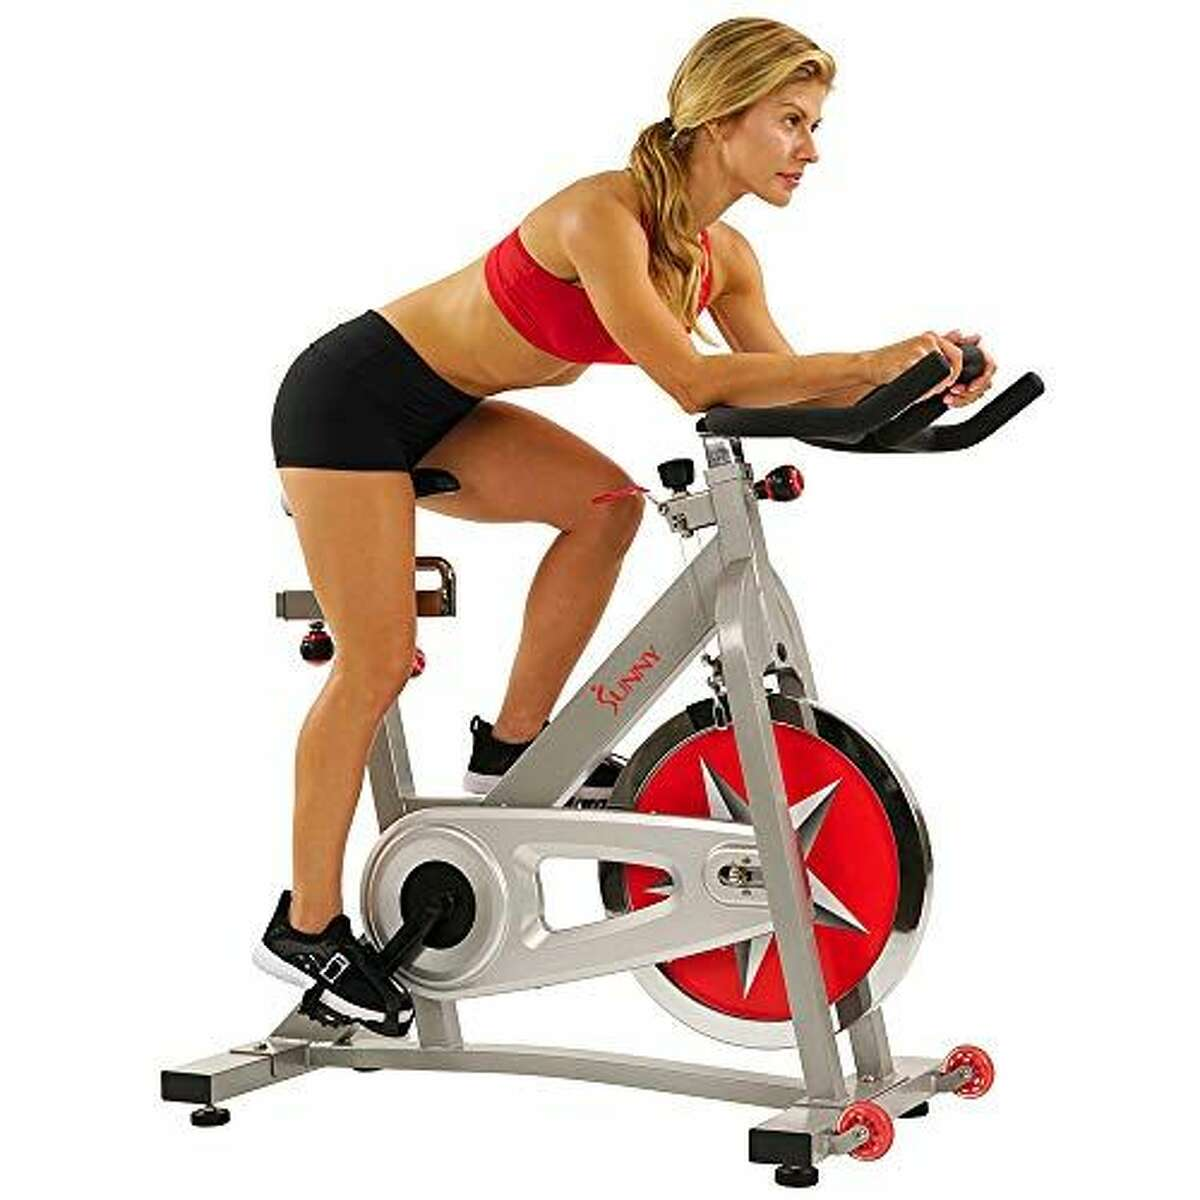 2) Sunny Health & Fitness Pro Indoor Cycling Bike: $299.99 CHECK PRICE This no-frills bike might not have all the bells and whistles of other models, but it'll get the job done-for less than $350. Use it with your favorite app or on its own for an endorphins boost and a great sweat sesh.